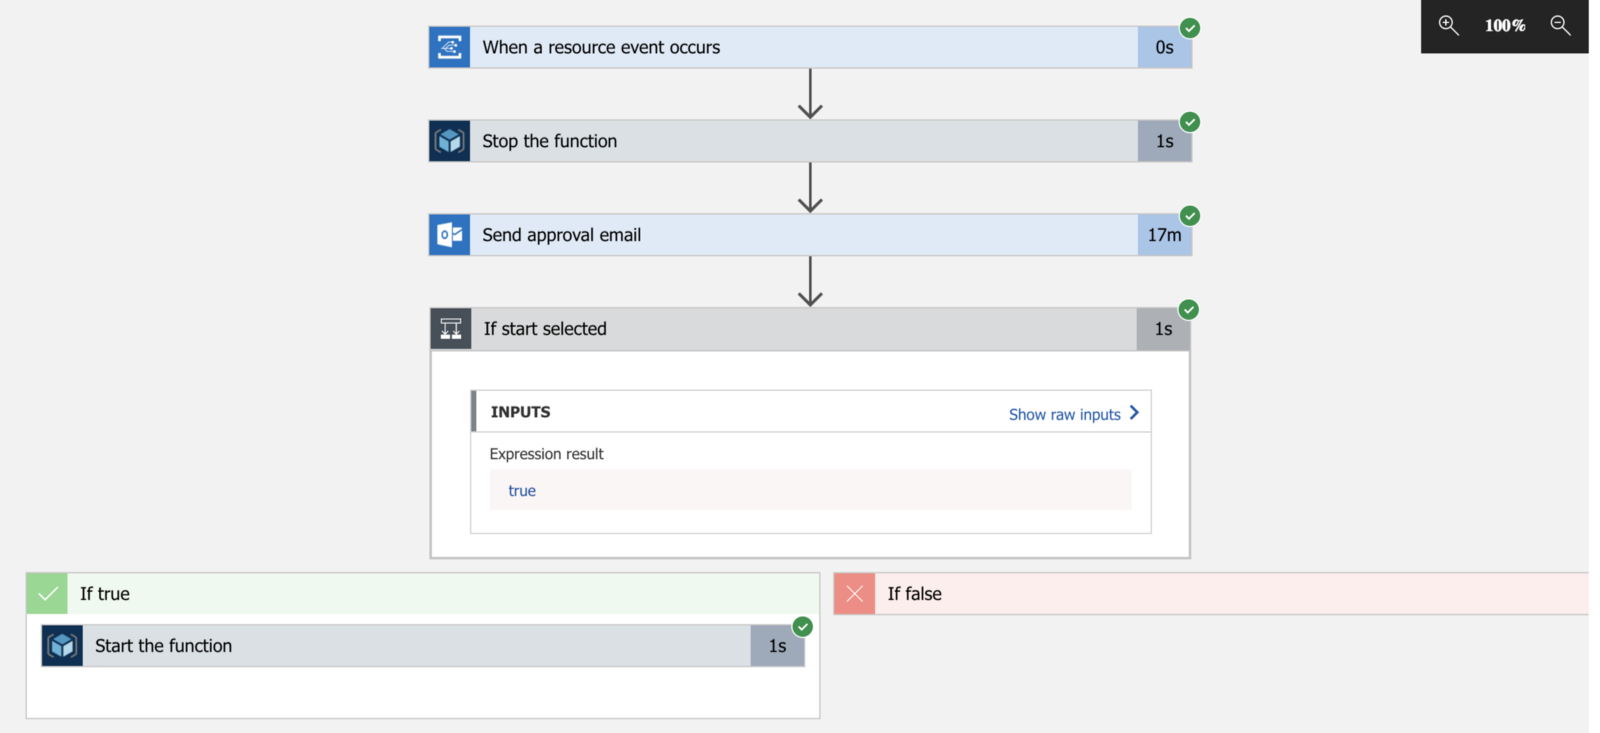 Reliable Event Processing In Azure Functions Hacker Noon The Circuit By Clicking On Verify Icon Lock Waited For 17 Minutes Before I Sent Approval To Re Connect